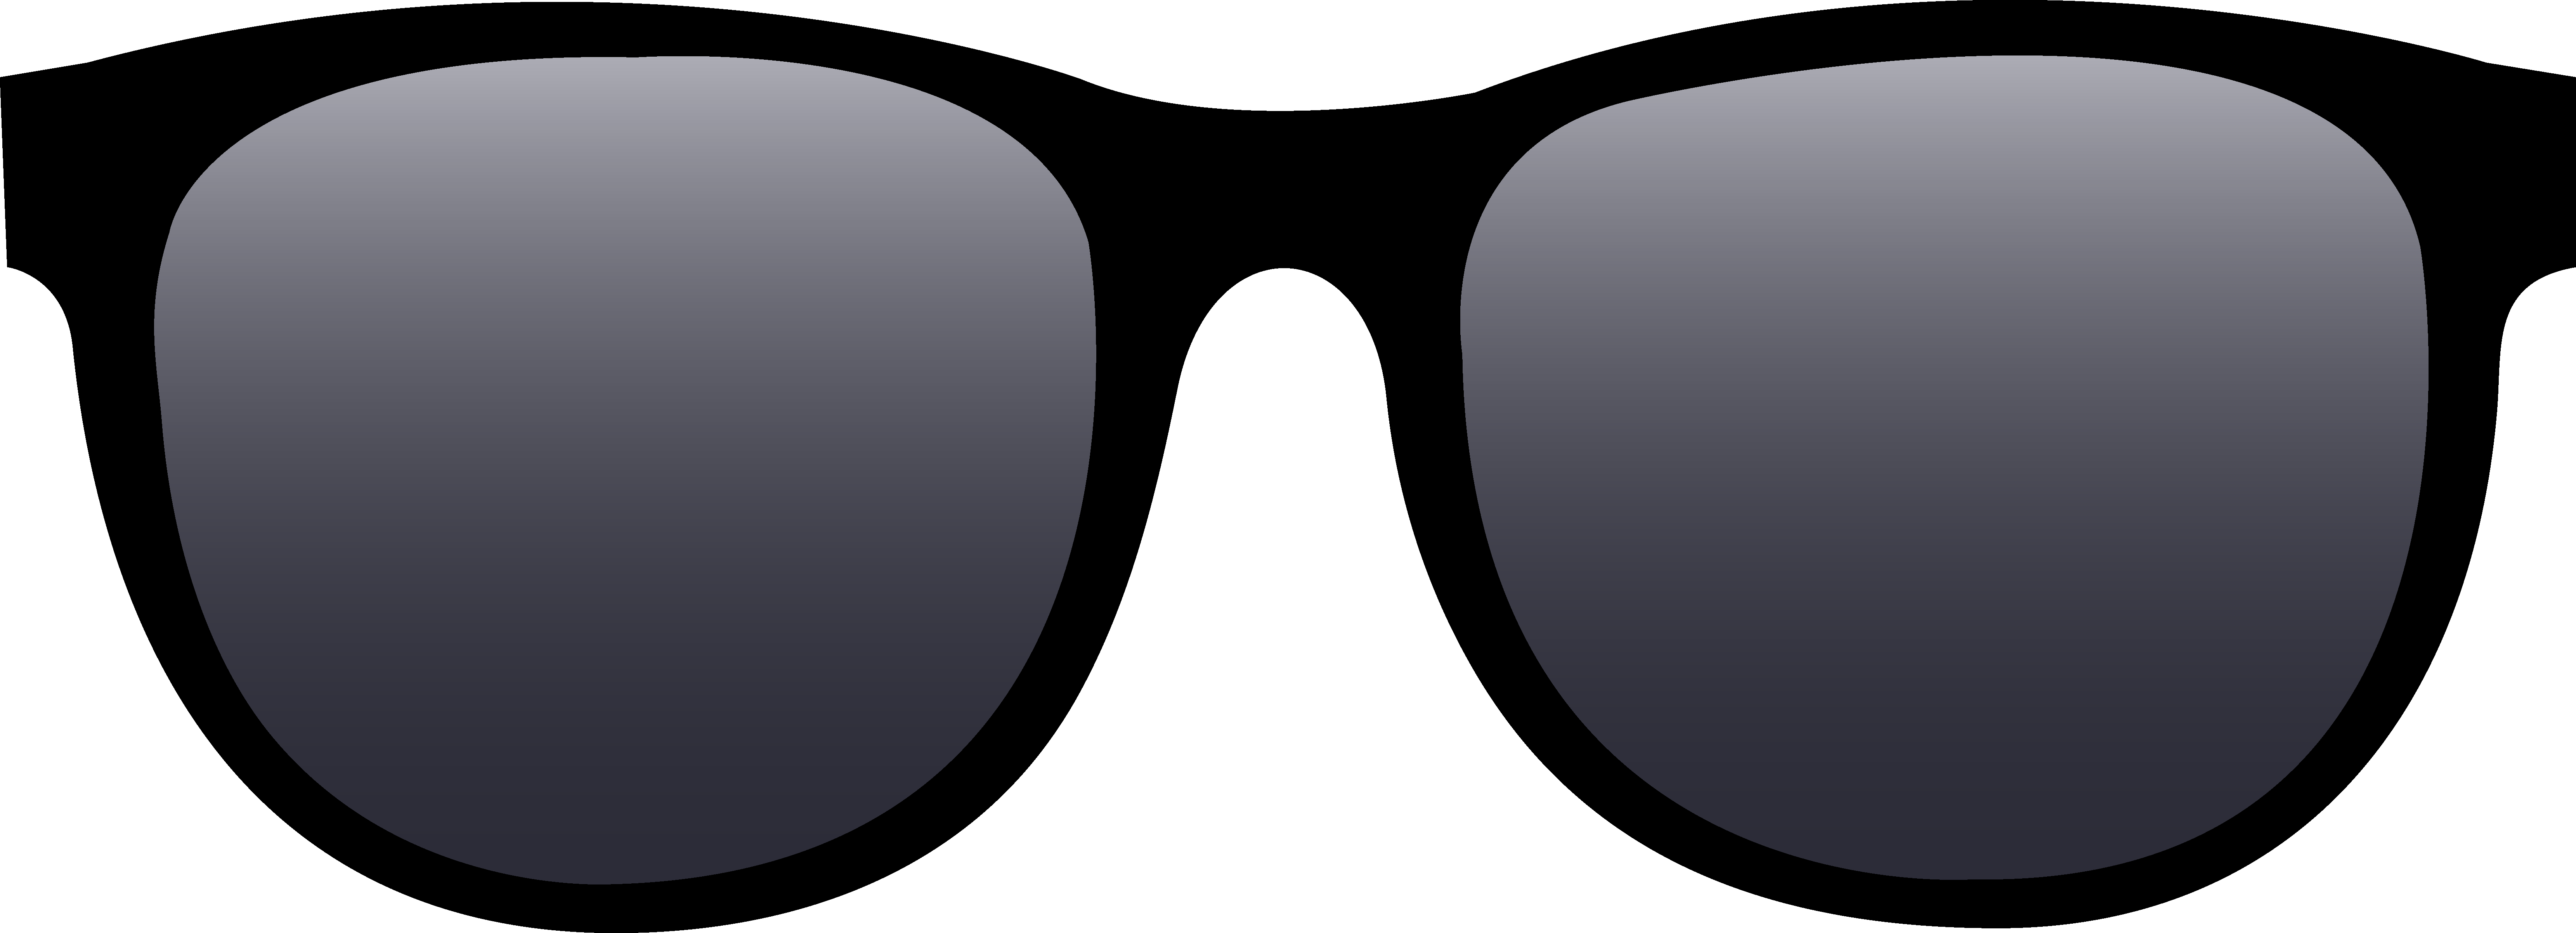 Sunglasses Png Clipart Images PNG Images